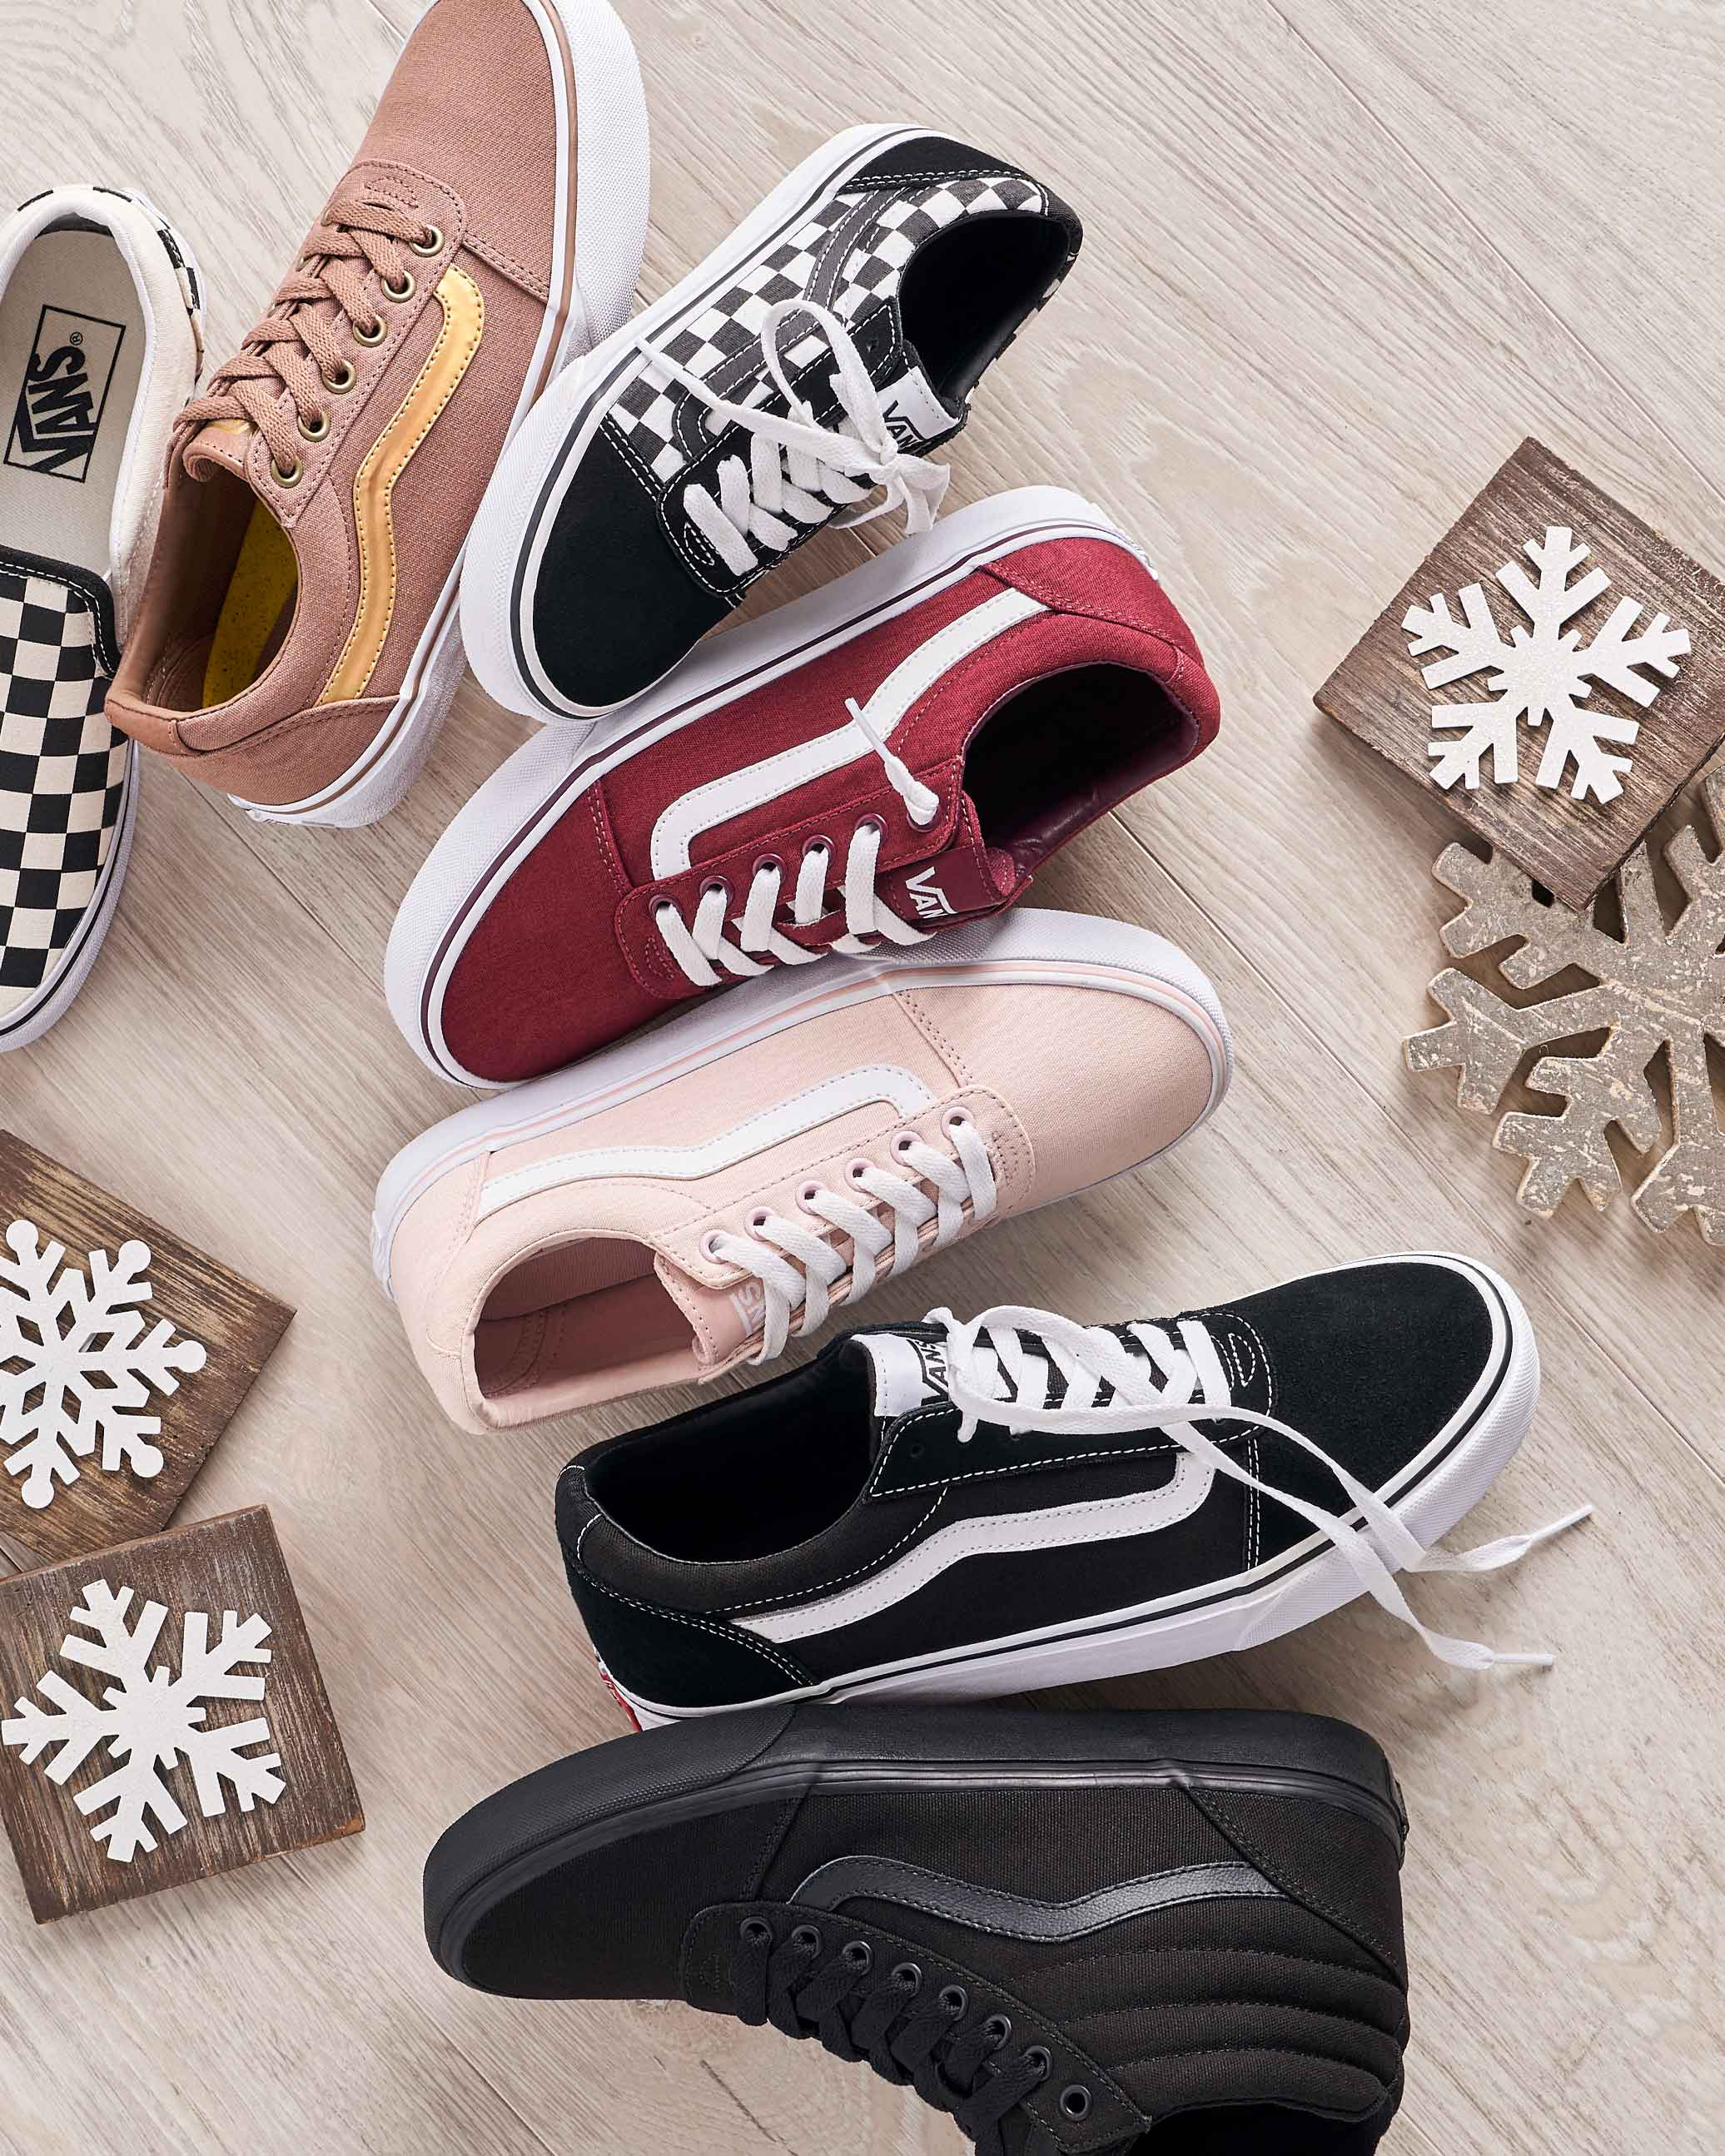 Assorted vans sneakers